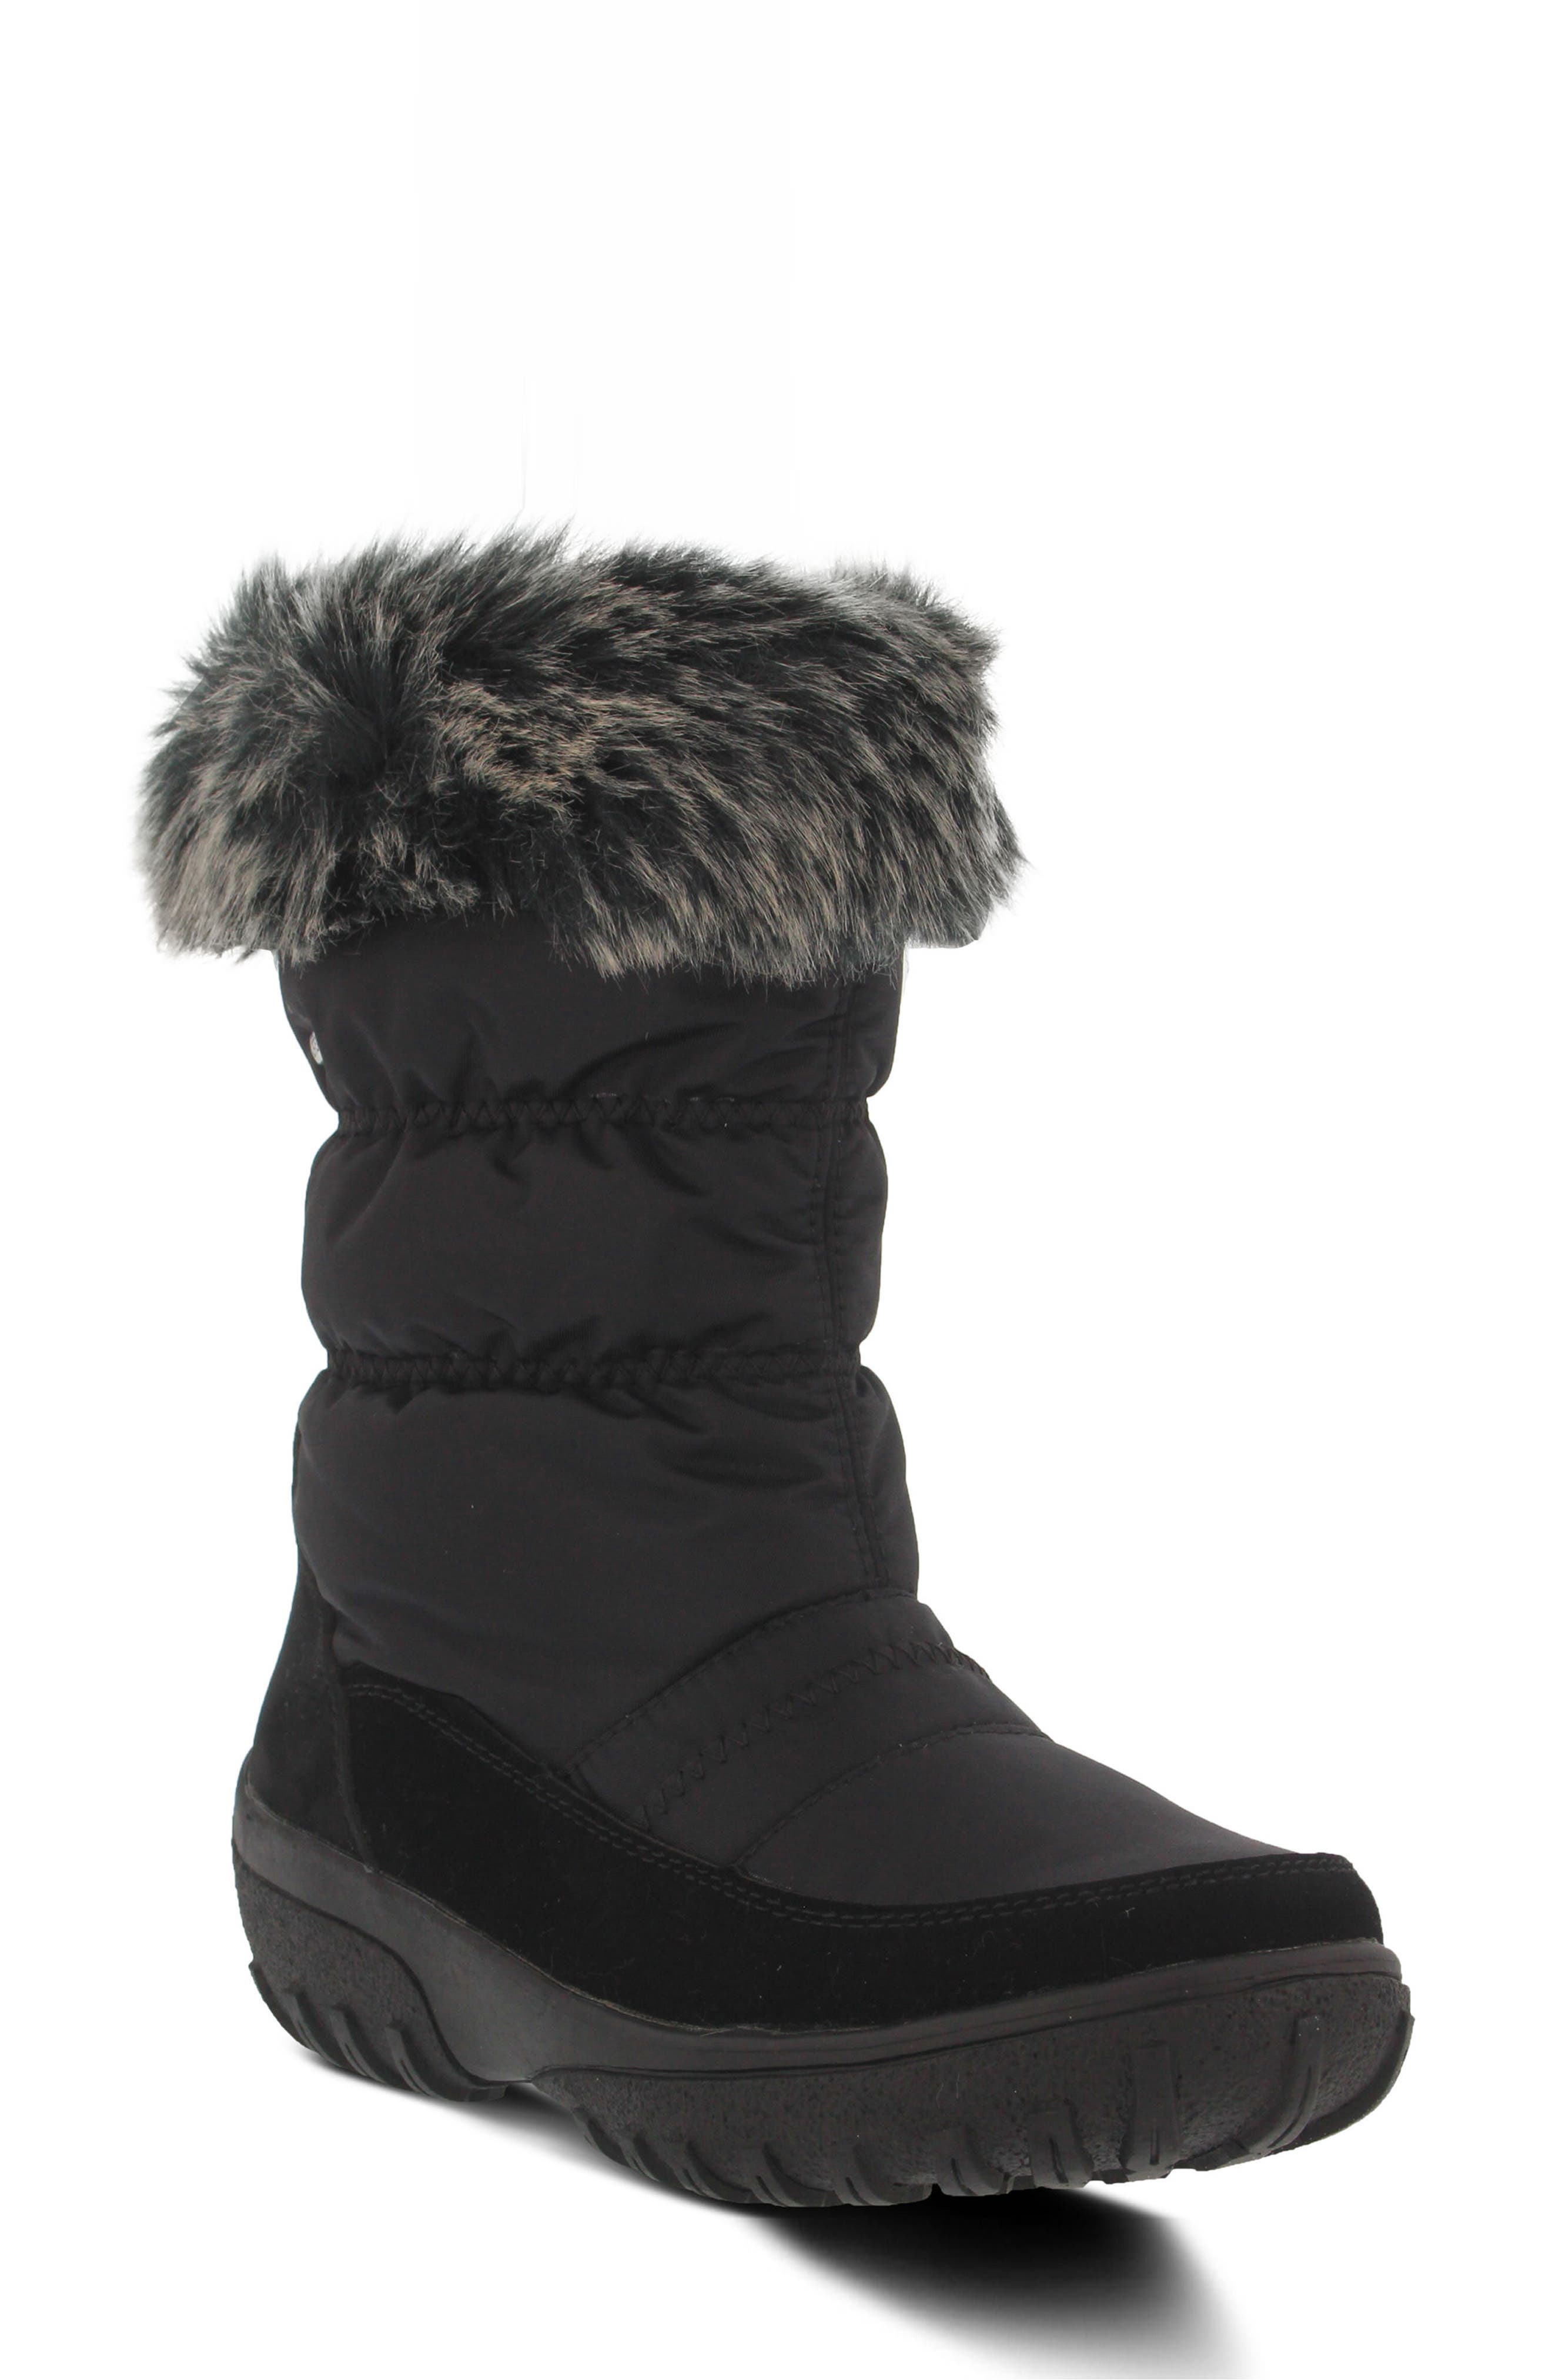 Rolim Faux Fur Trim Waterproof Boot,                             Main thumbnail 1, color,                             Black